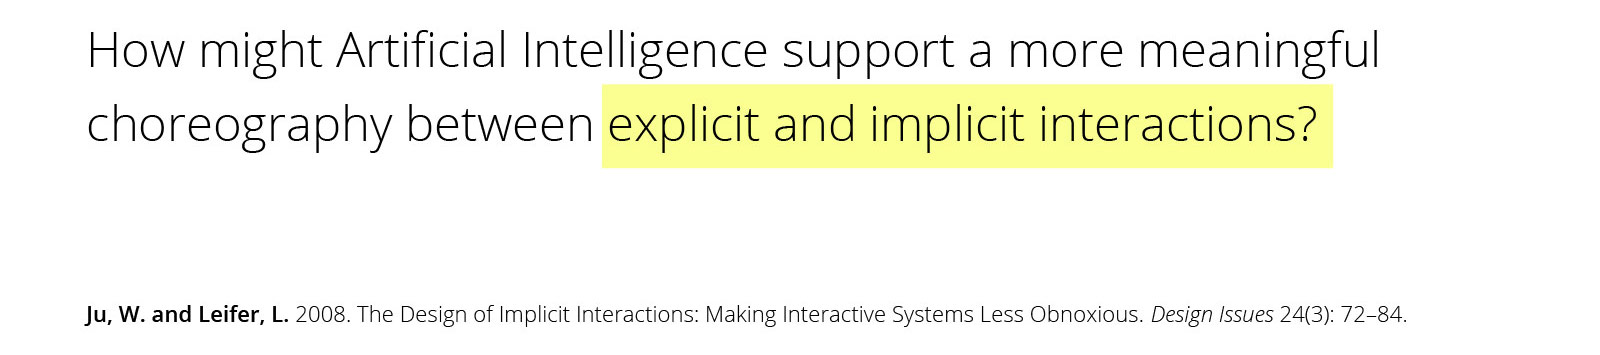 UX of AI presentation - choreography between implicit and explicit interactions